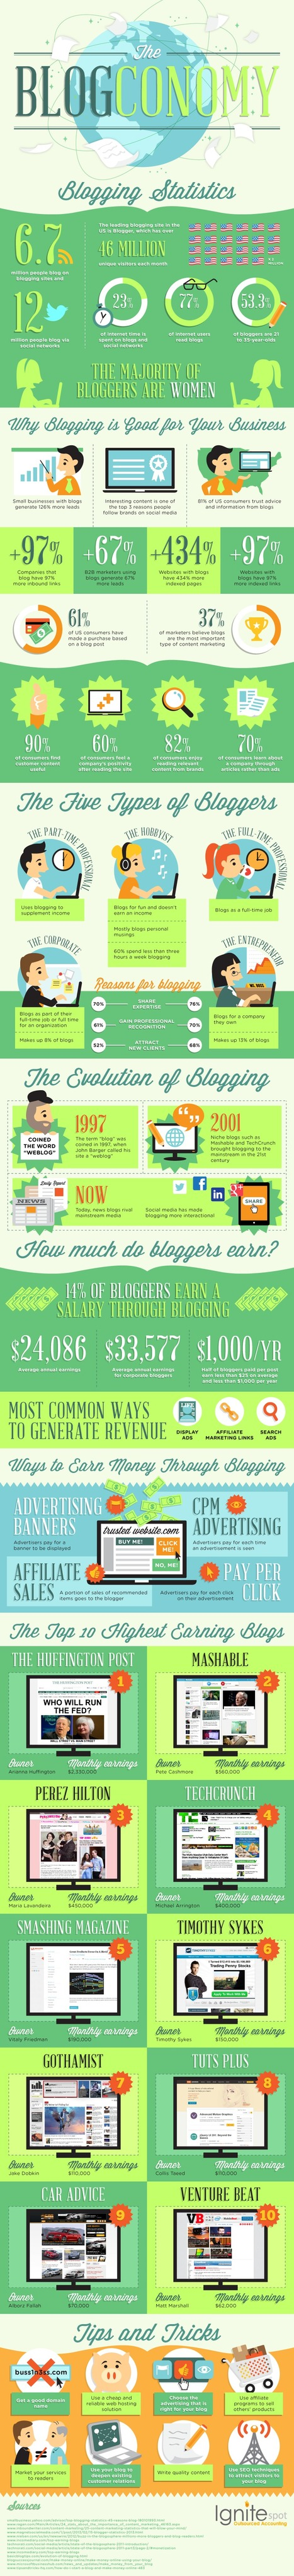 Blogging Statistics [INFOGRAPHIC] | Social Media Today | Integrated Brand Communications | Scoop.it